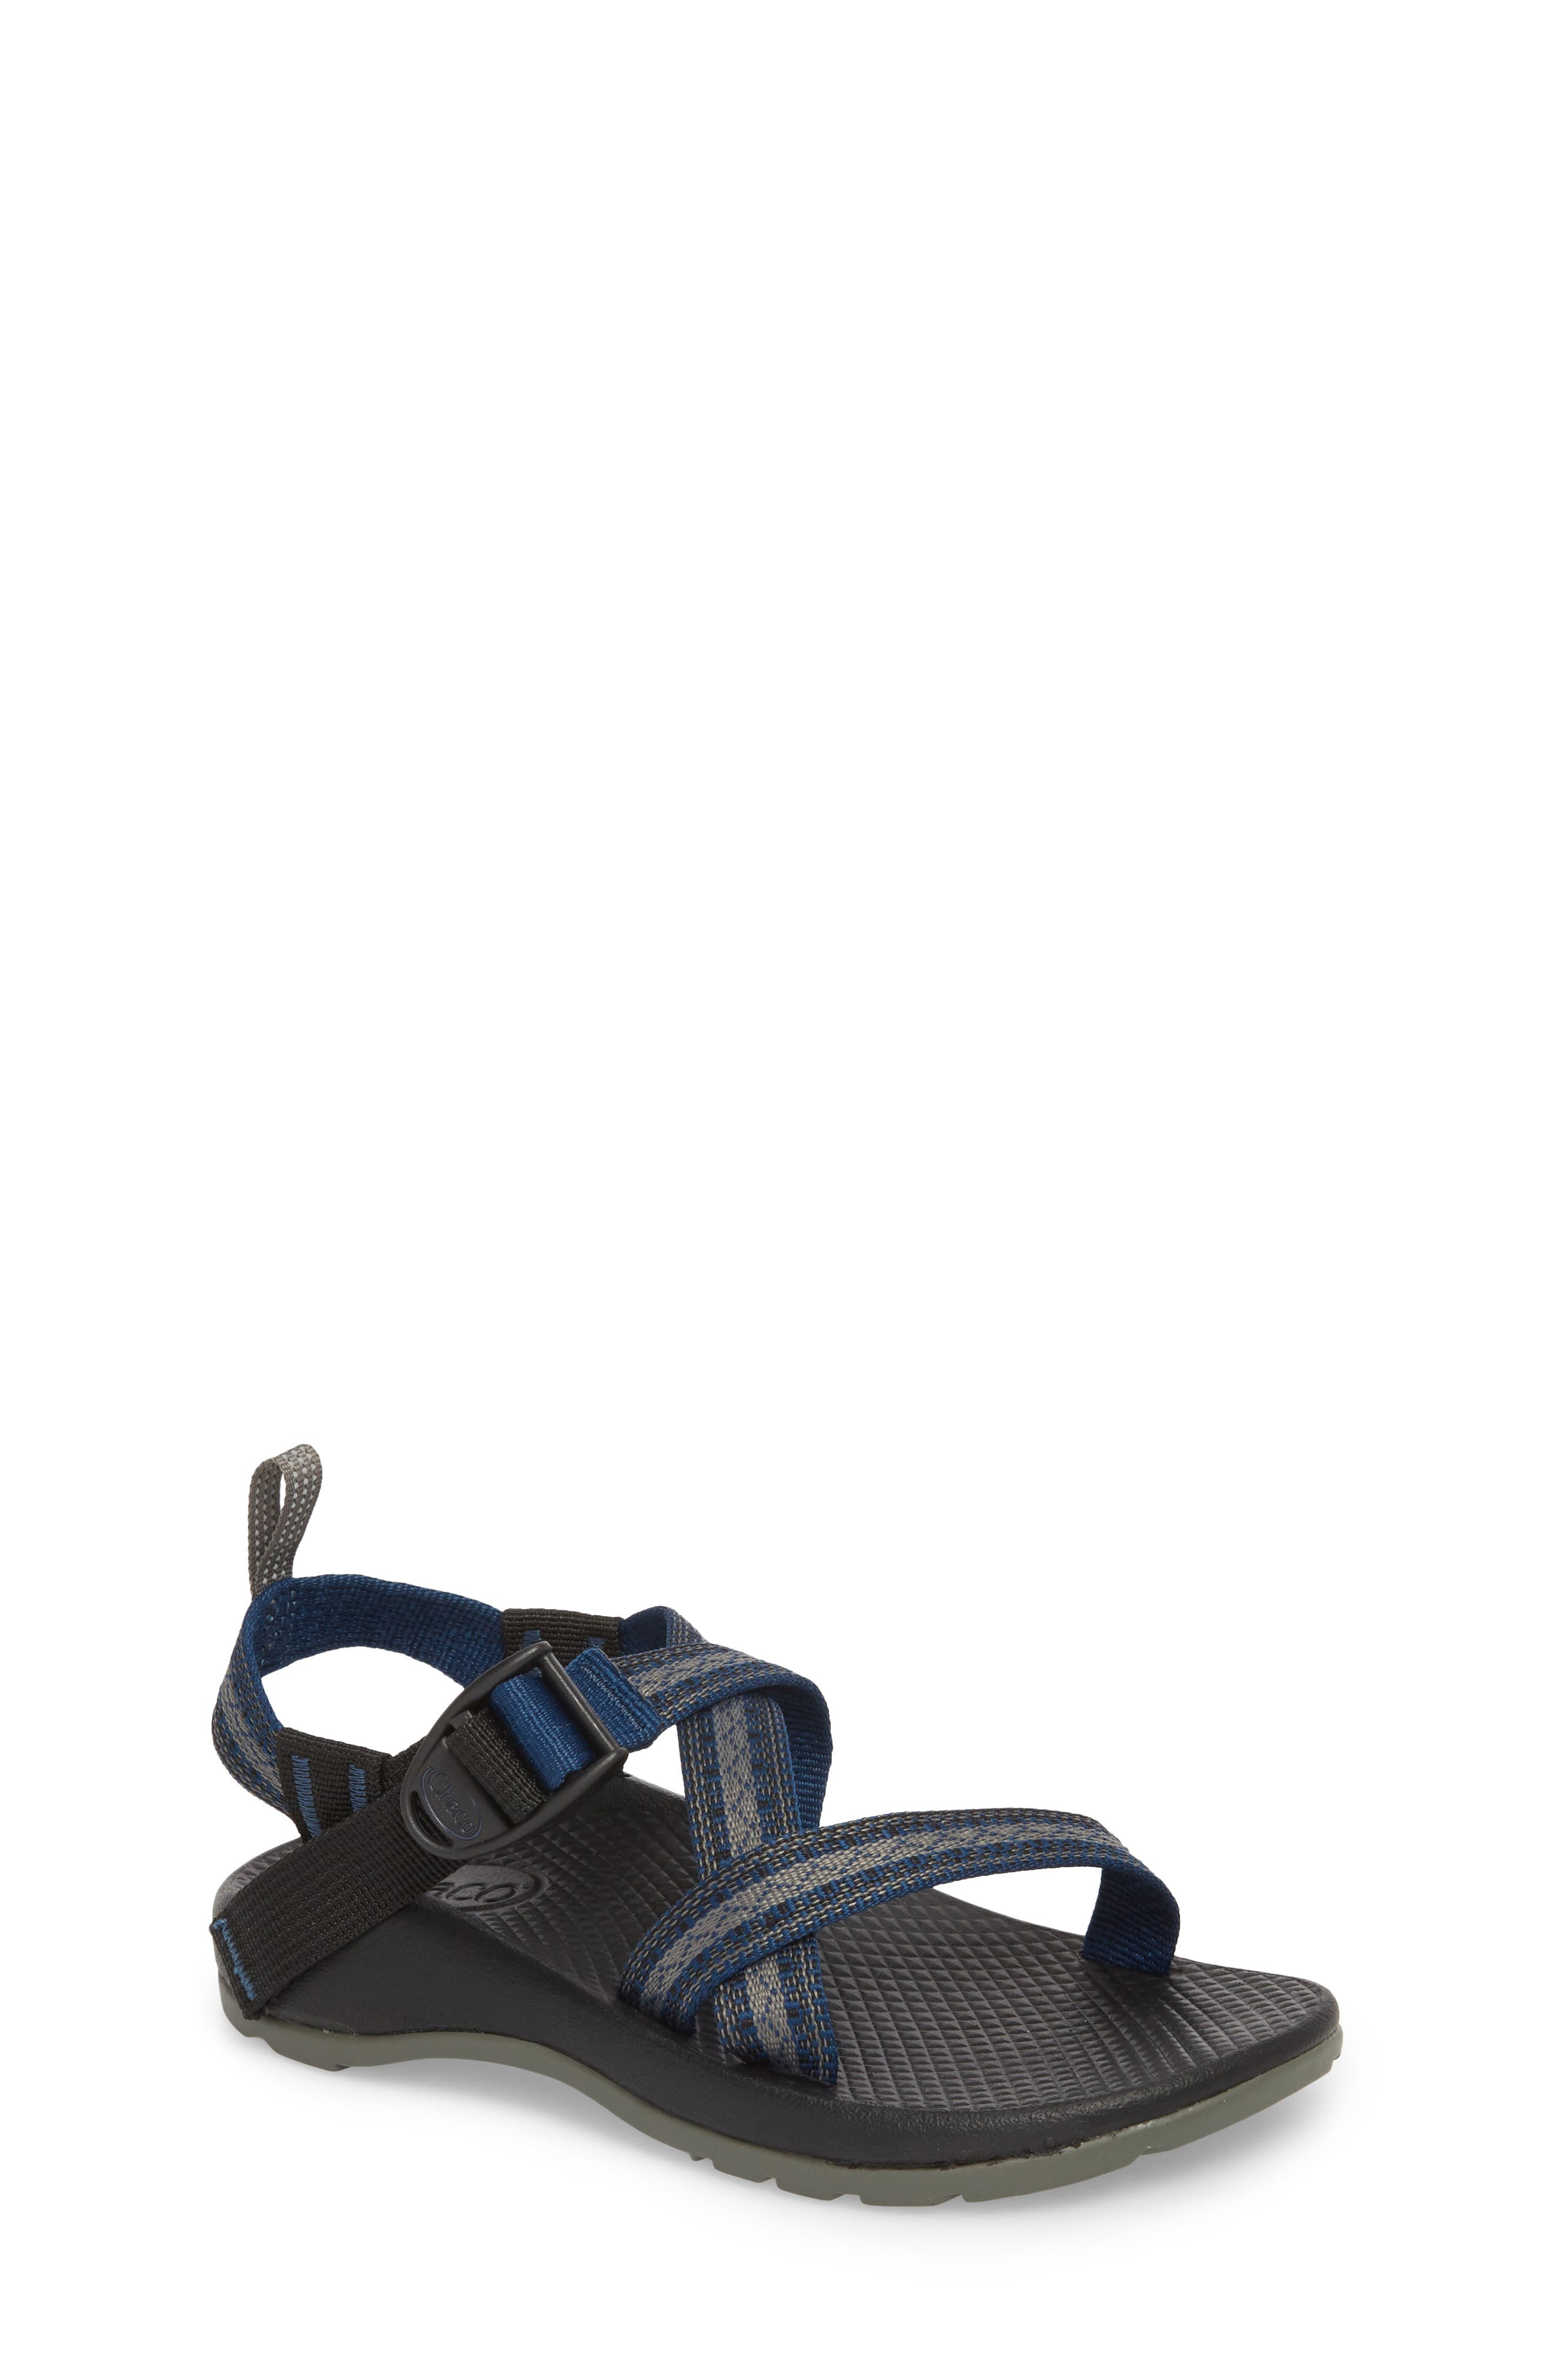 Main Image - Chaco Z/1 Sport Sandal (Toddler, Little Kid & Big Kid)